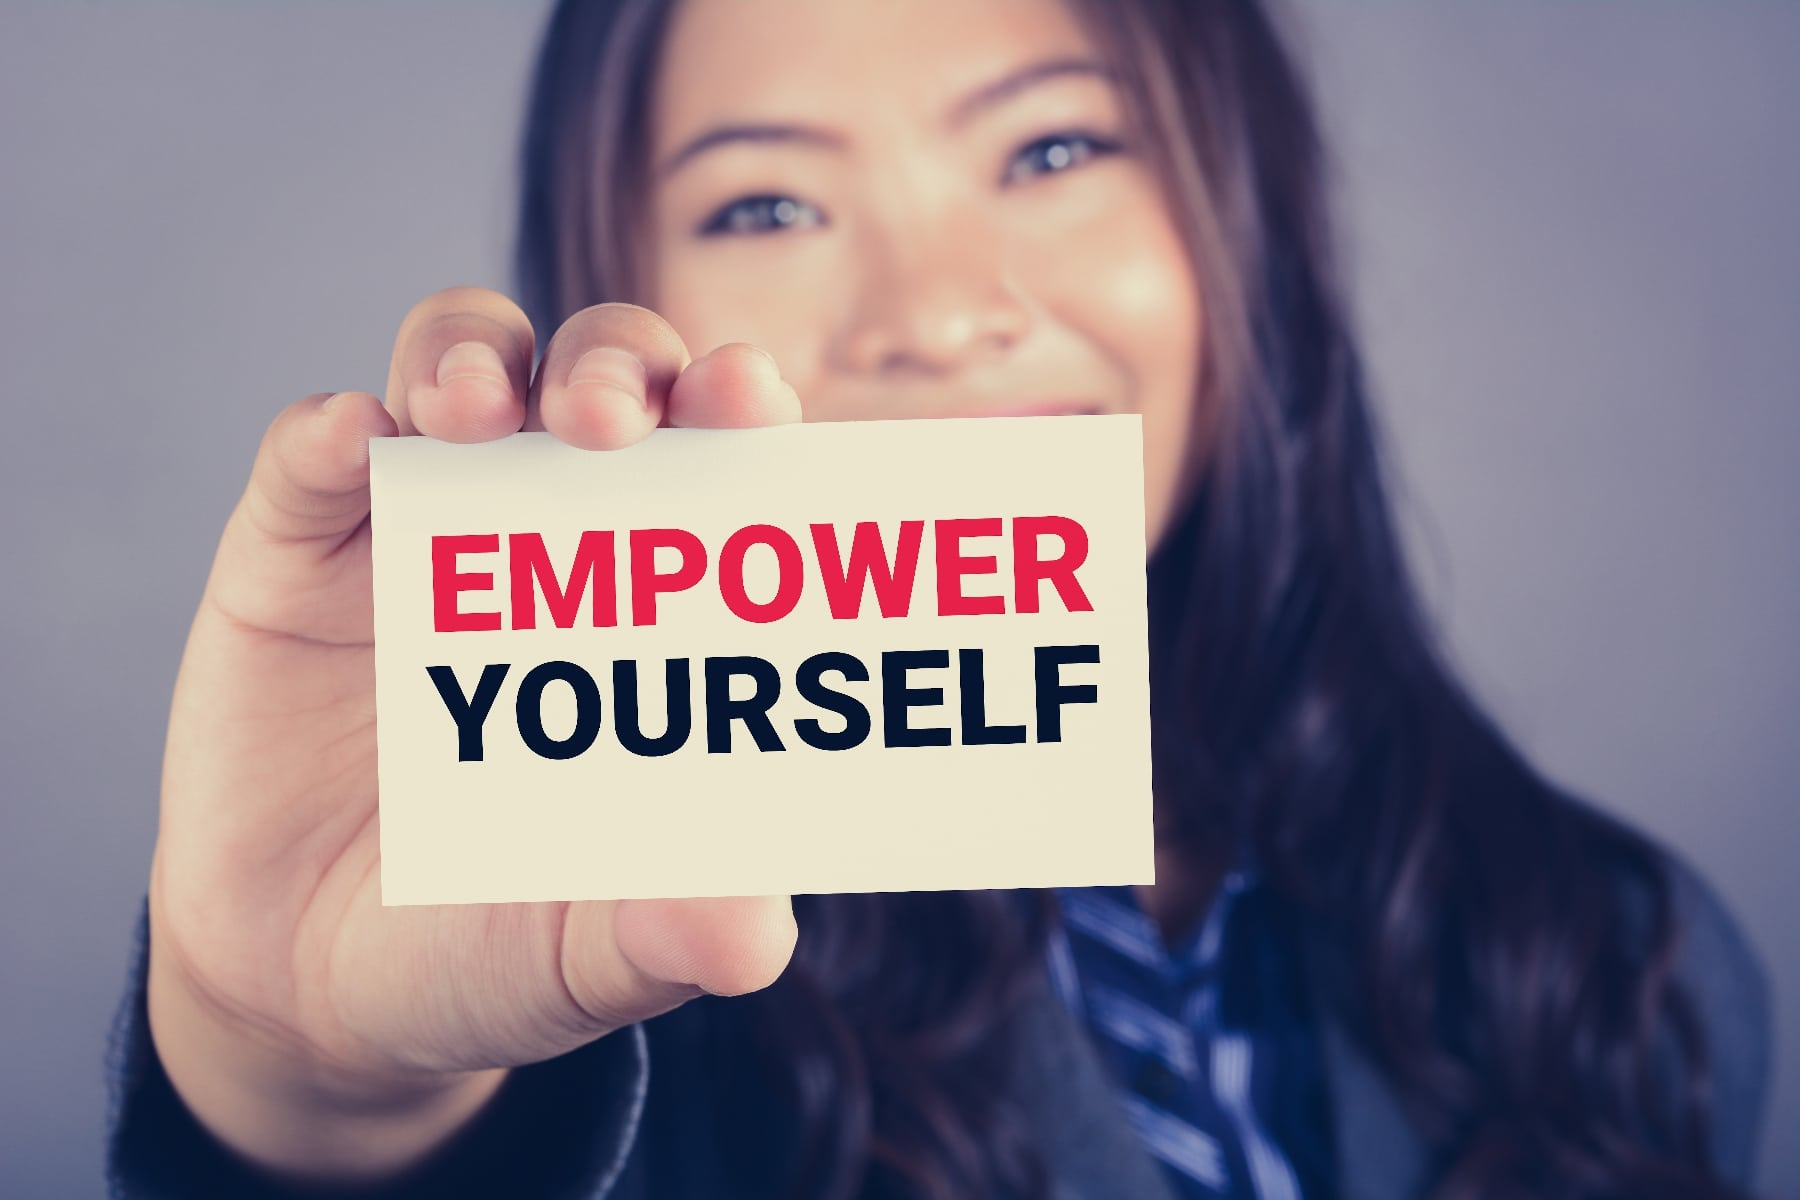 EMPOWER YOURSELF message on the card shown by a businesswoman, vintage tone effect